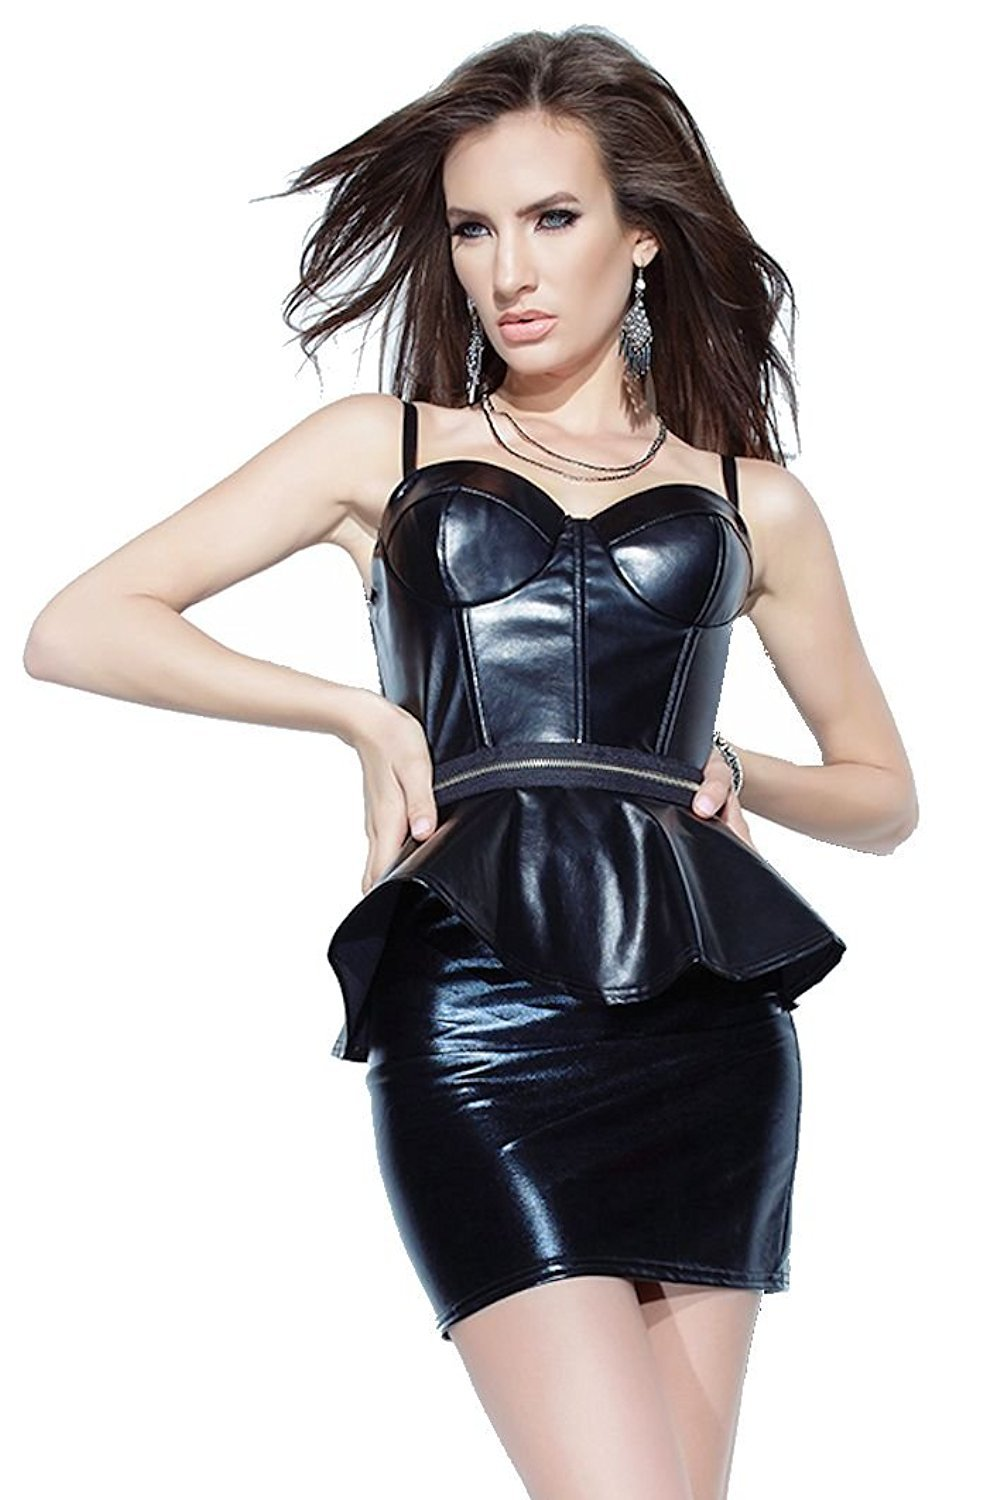 PVC Dress Spandex Black strap mini dress wet look PVC clubwear mini dress Size M